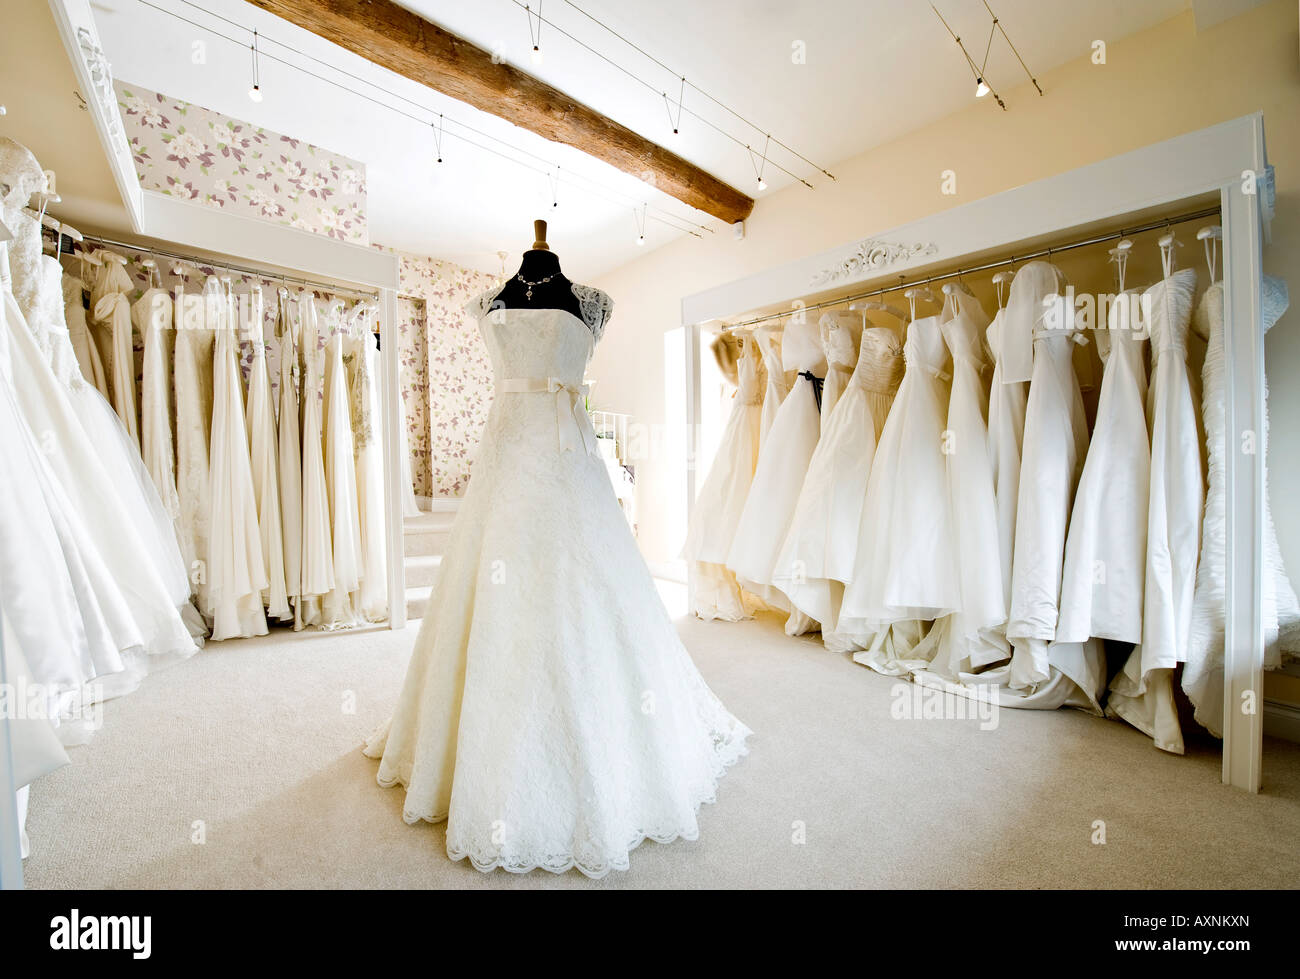 e5ac42052 Wedding Dresses Display Stock Photos & Wedding Dresses Display Stock ...